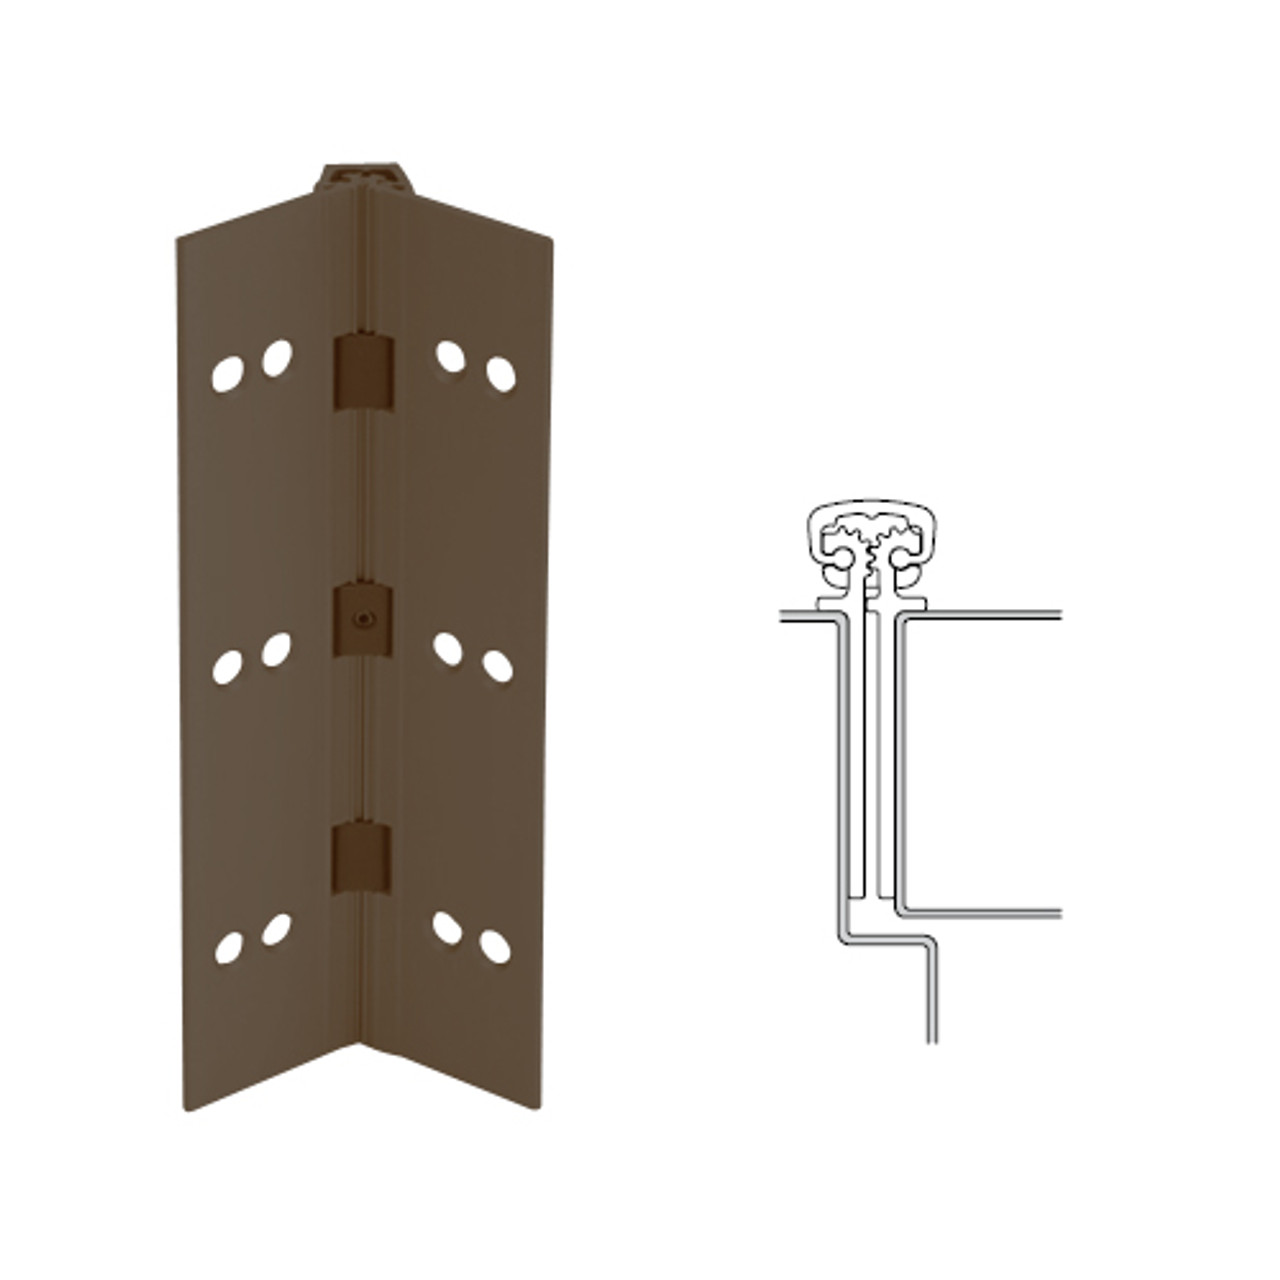 027XY-313AN-85-SECWDHM IVES Full Mortise Continuous Geared Hinges with Security Screws - Hex Pin Drive in Dark Bronze Anodized